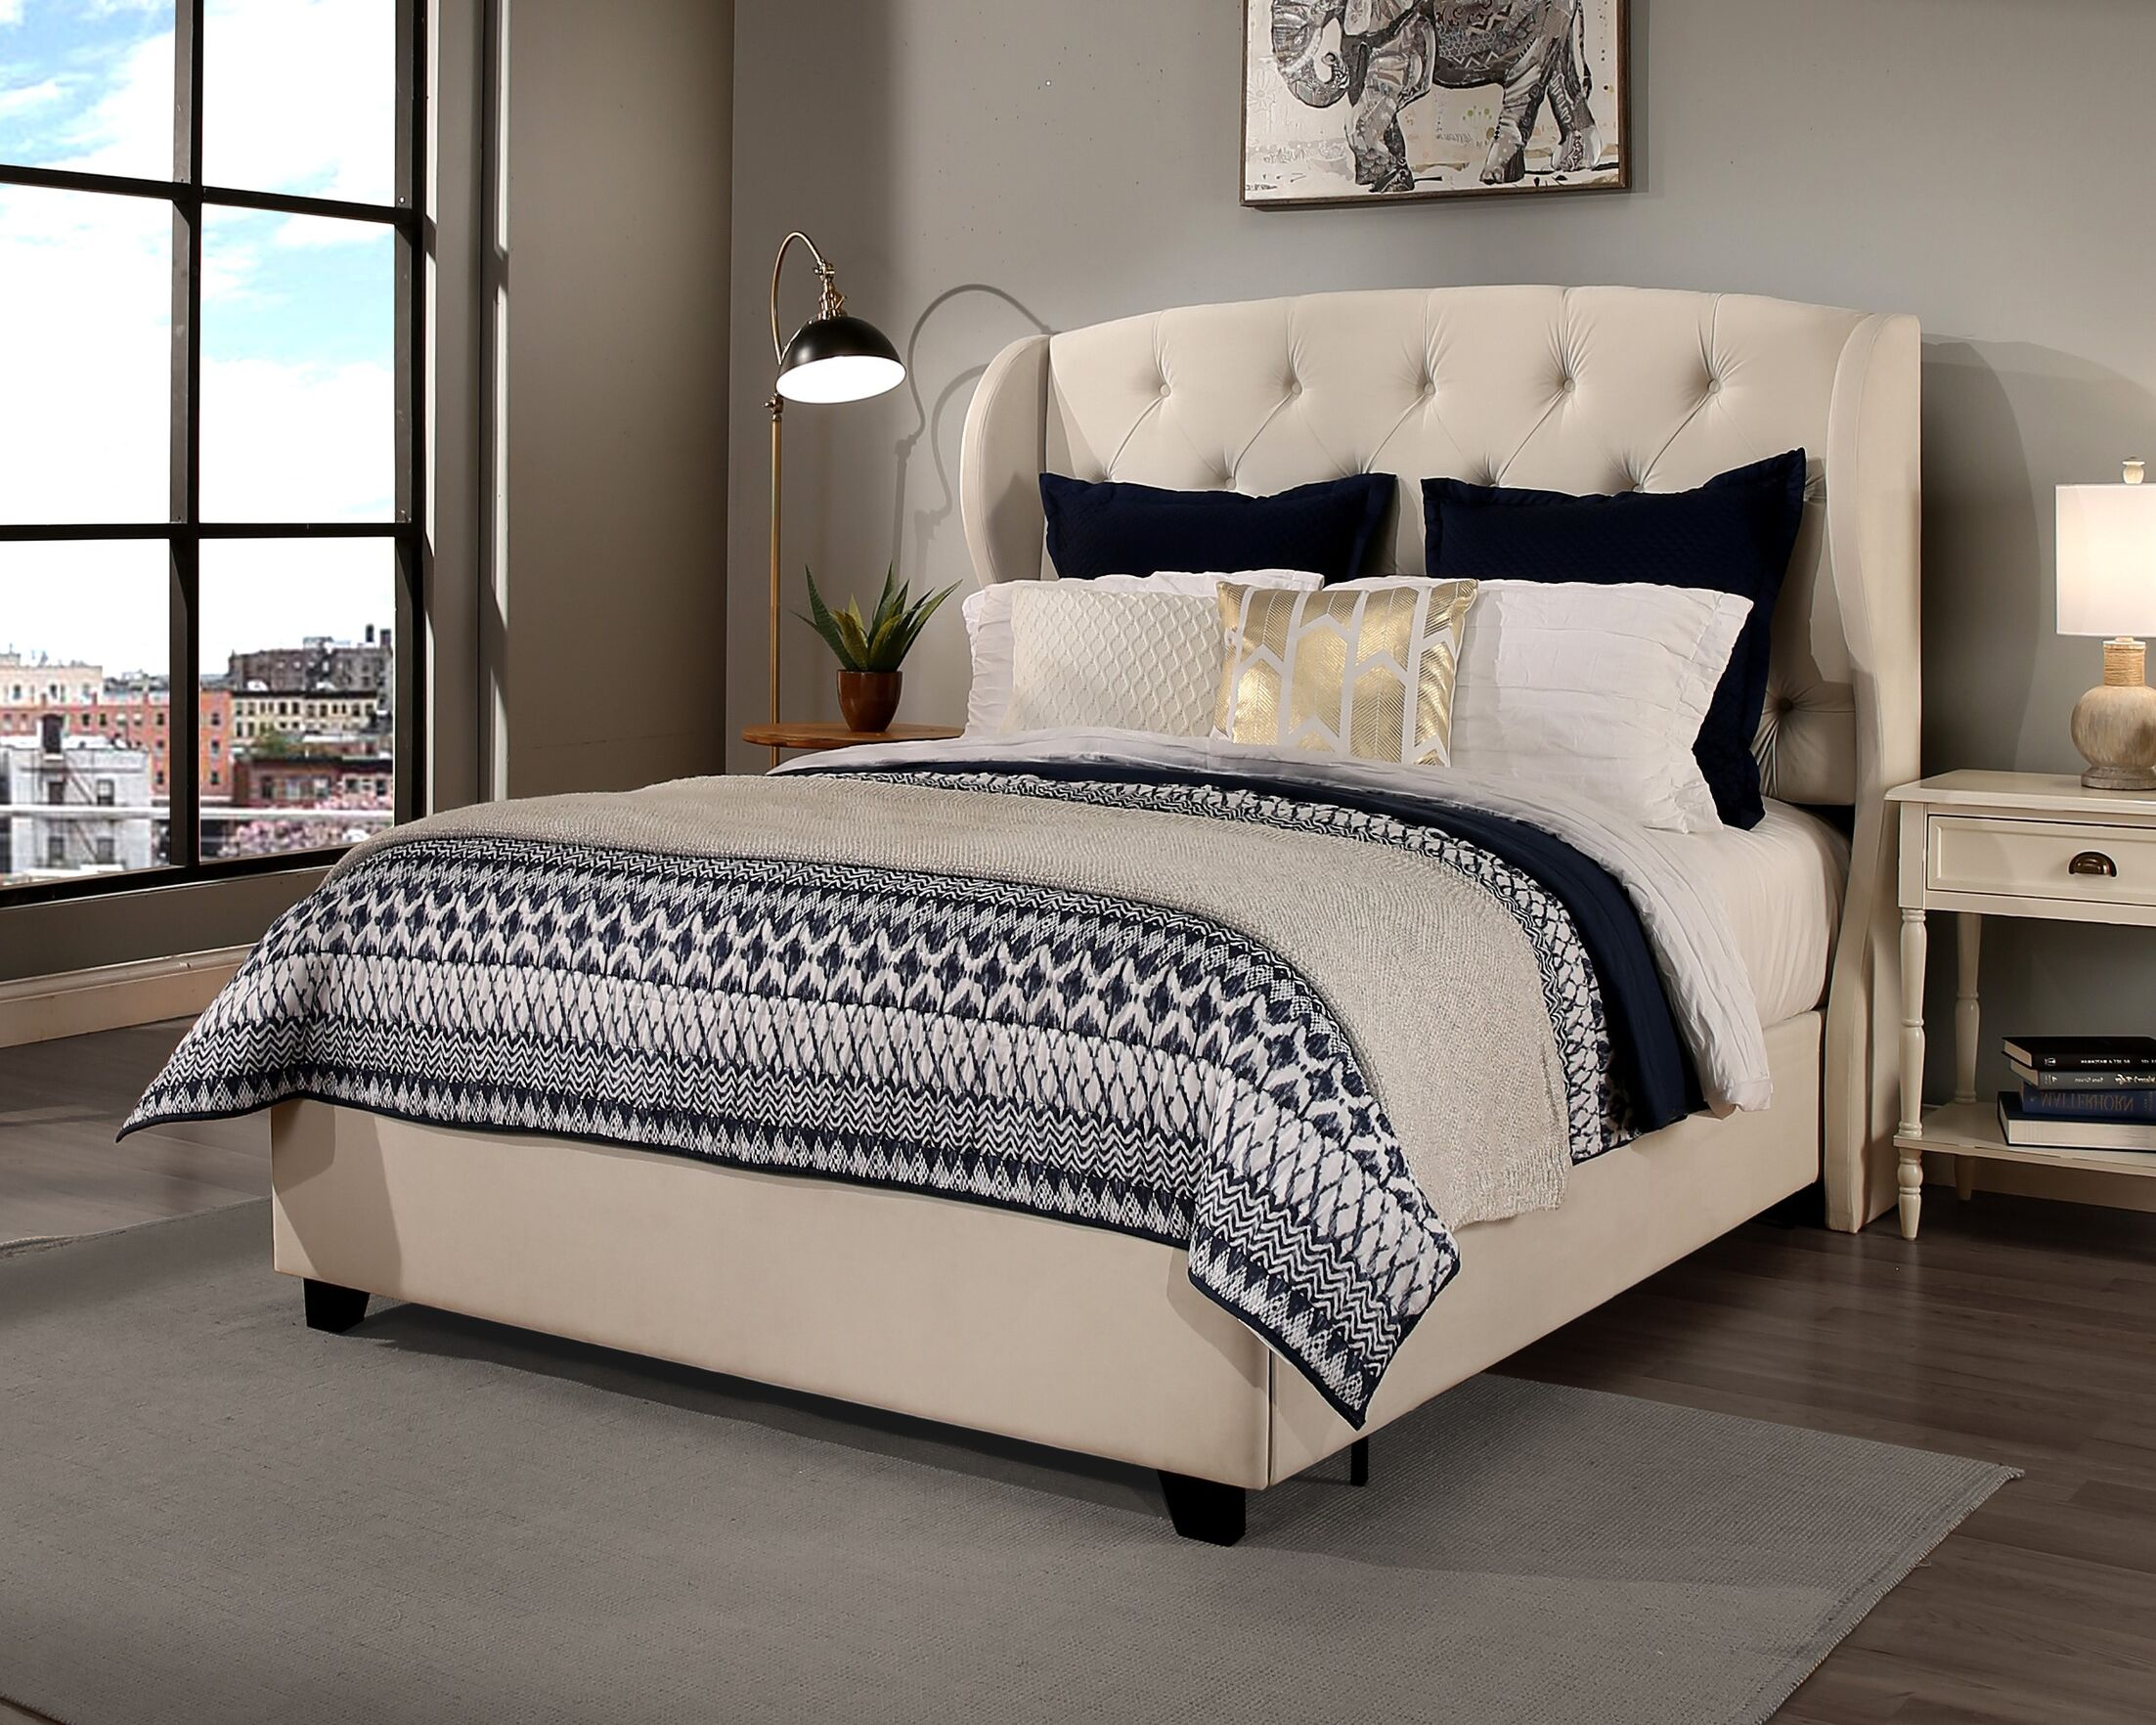 Sornson Upholstered Platform Bed with Mattress Size: California King, Color: Ivory